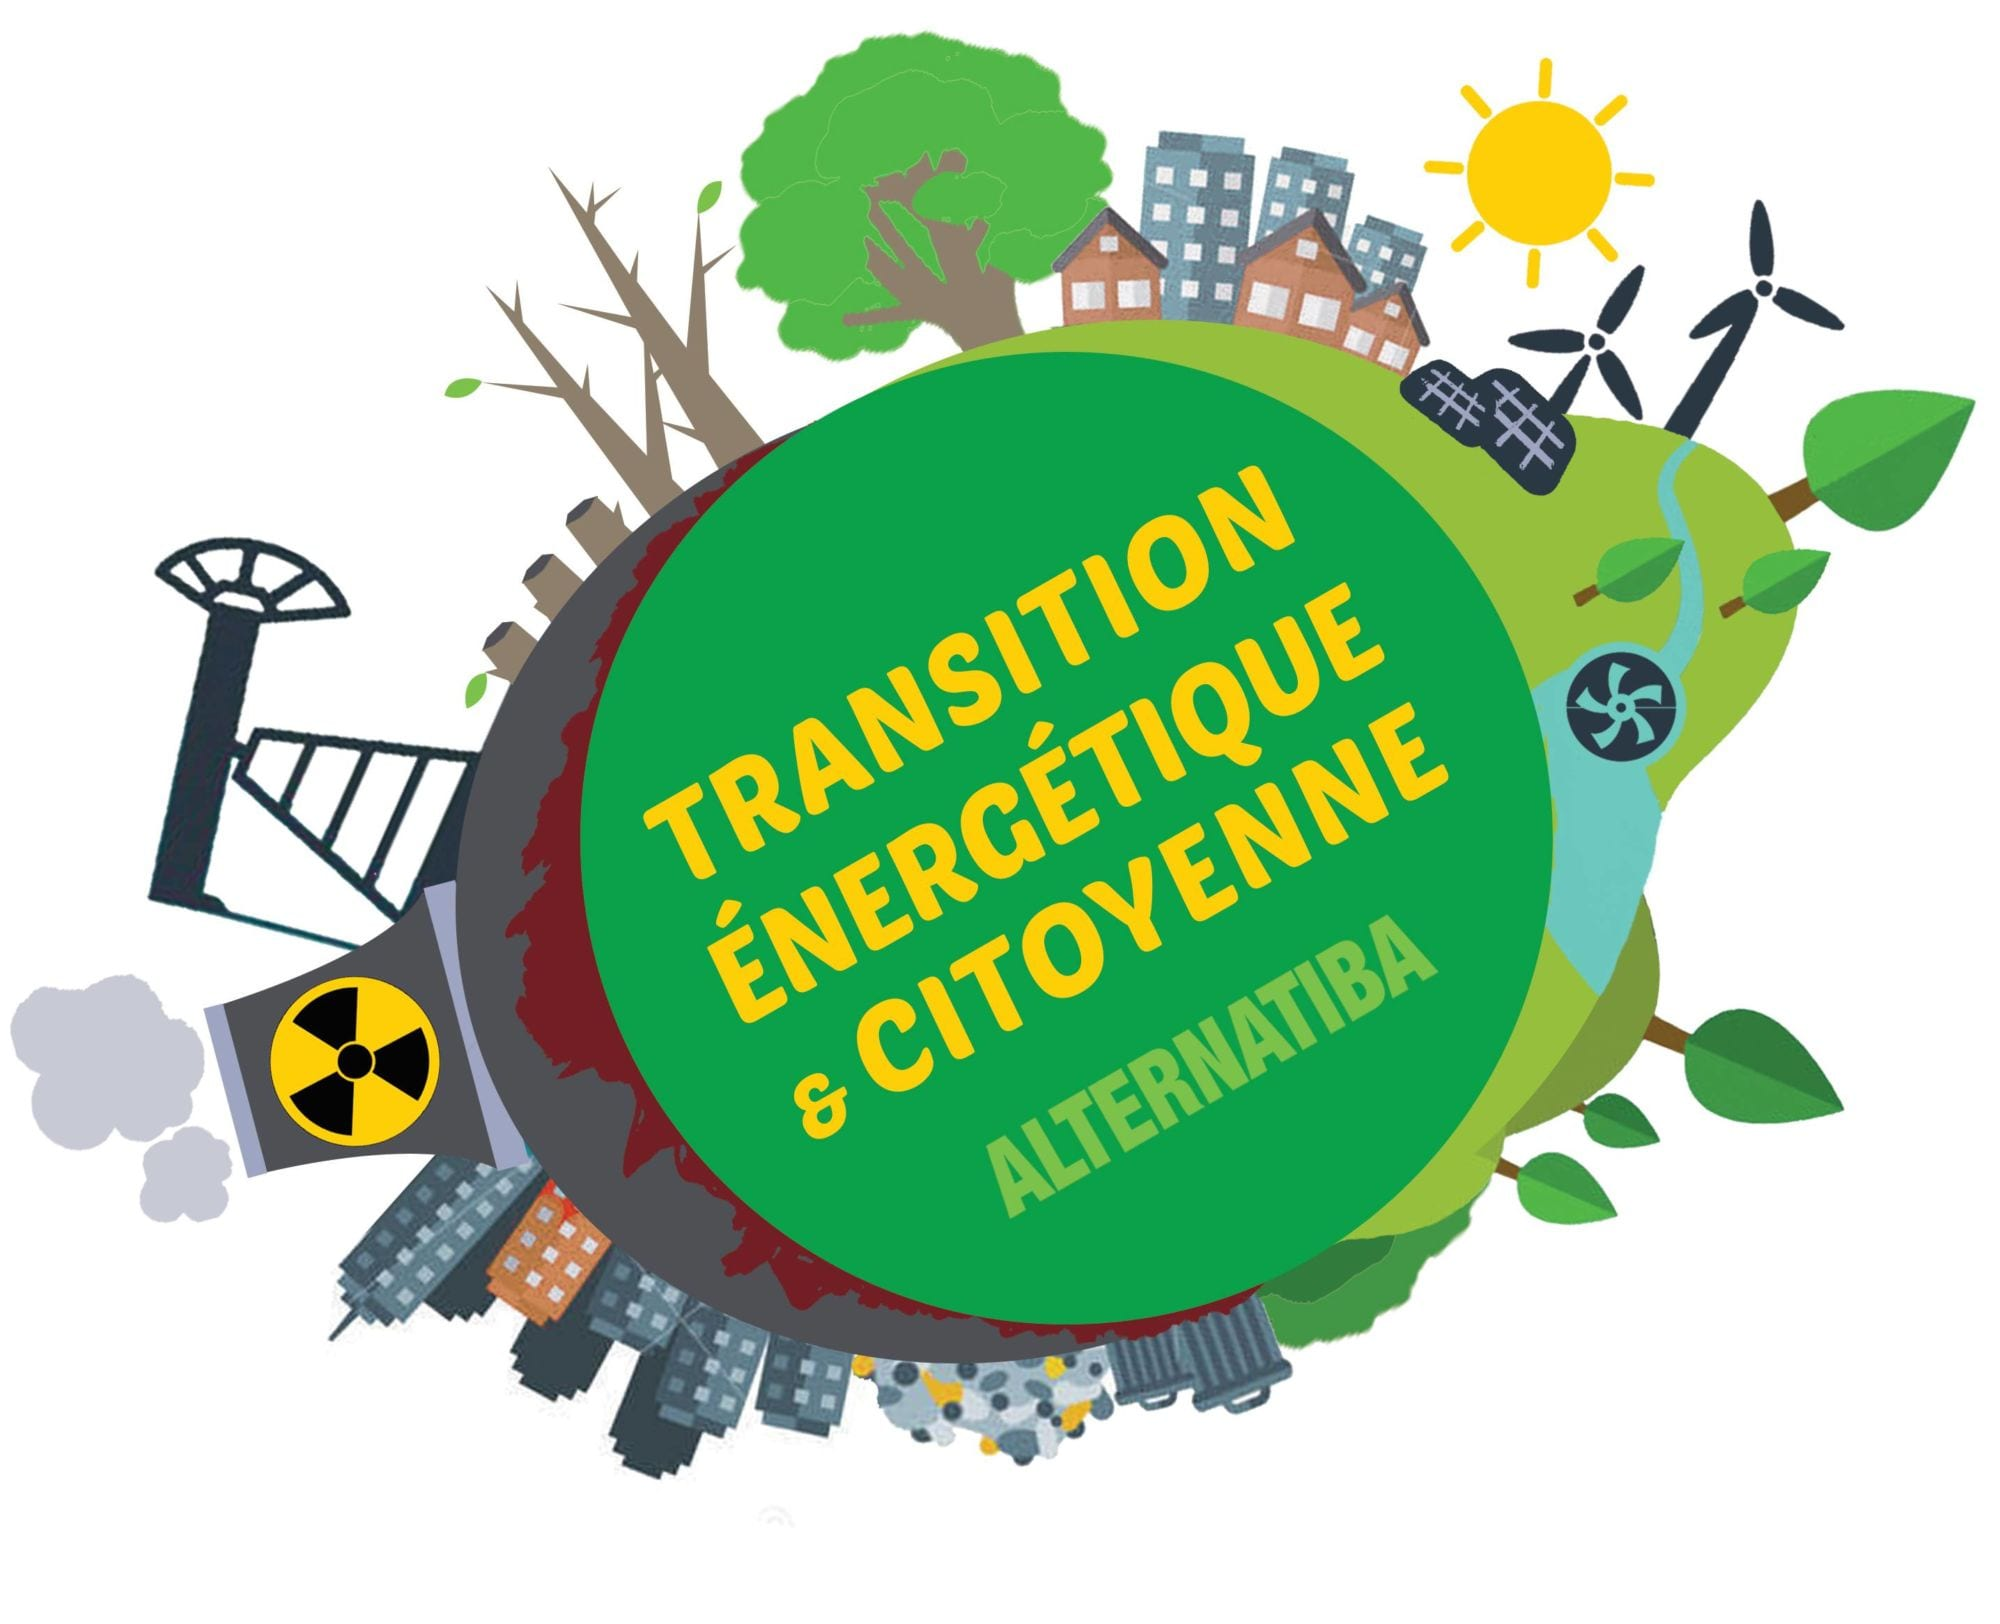 logo_transition-energetique-citoyenne_v3